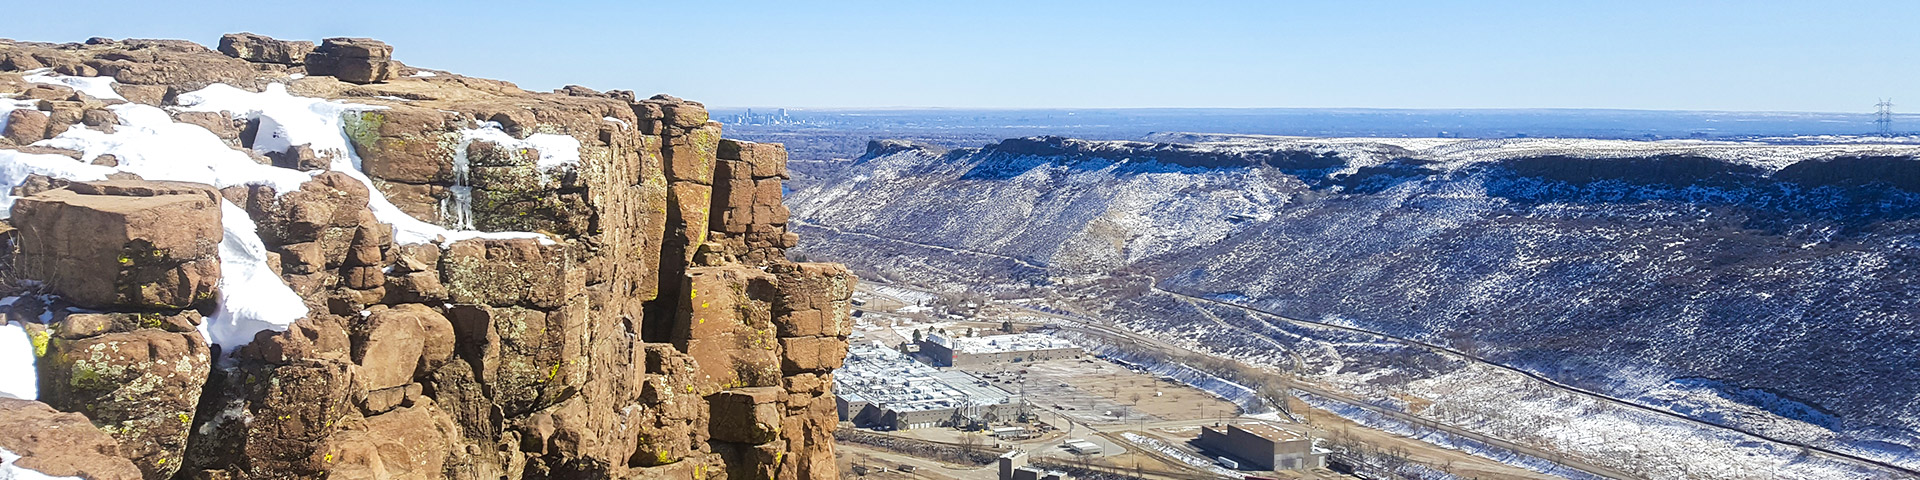 Panorama of the North Table Mountain Park hike in Denver, Colorado